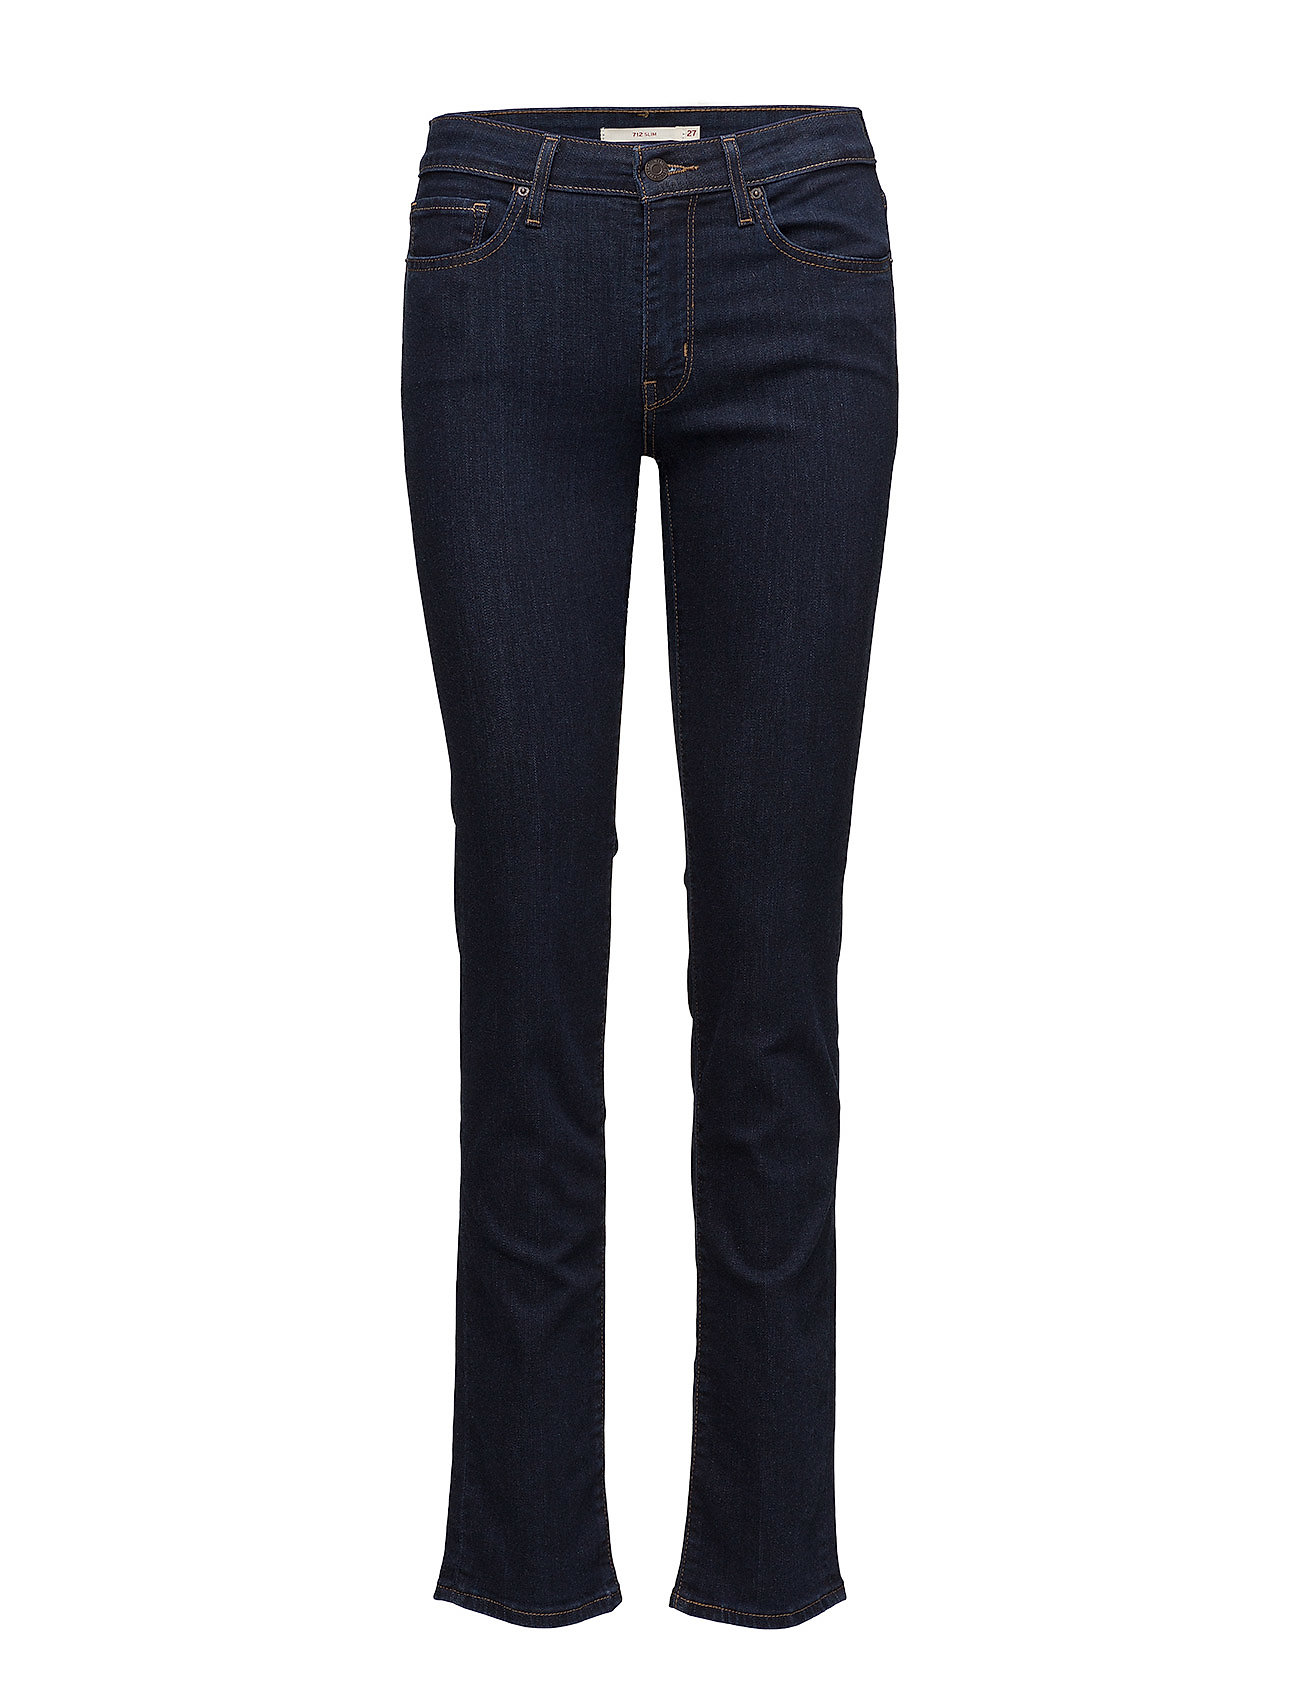 LEVI´S Women 712 SLIM LONE WOLF - DARK INDIGO - FLAT FINISH